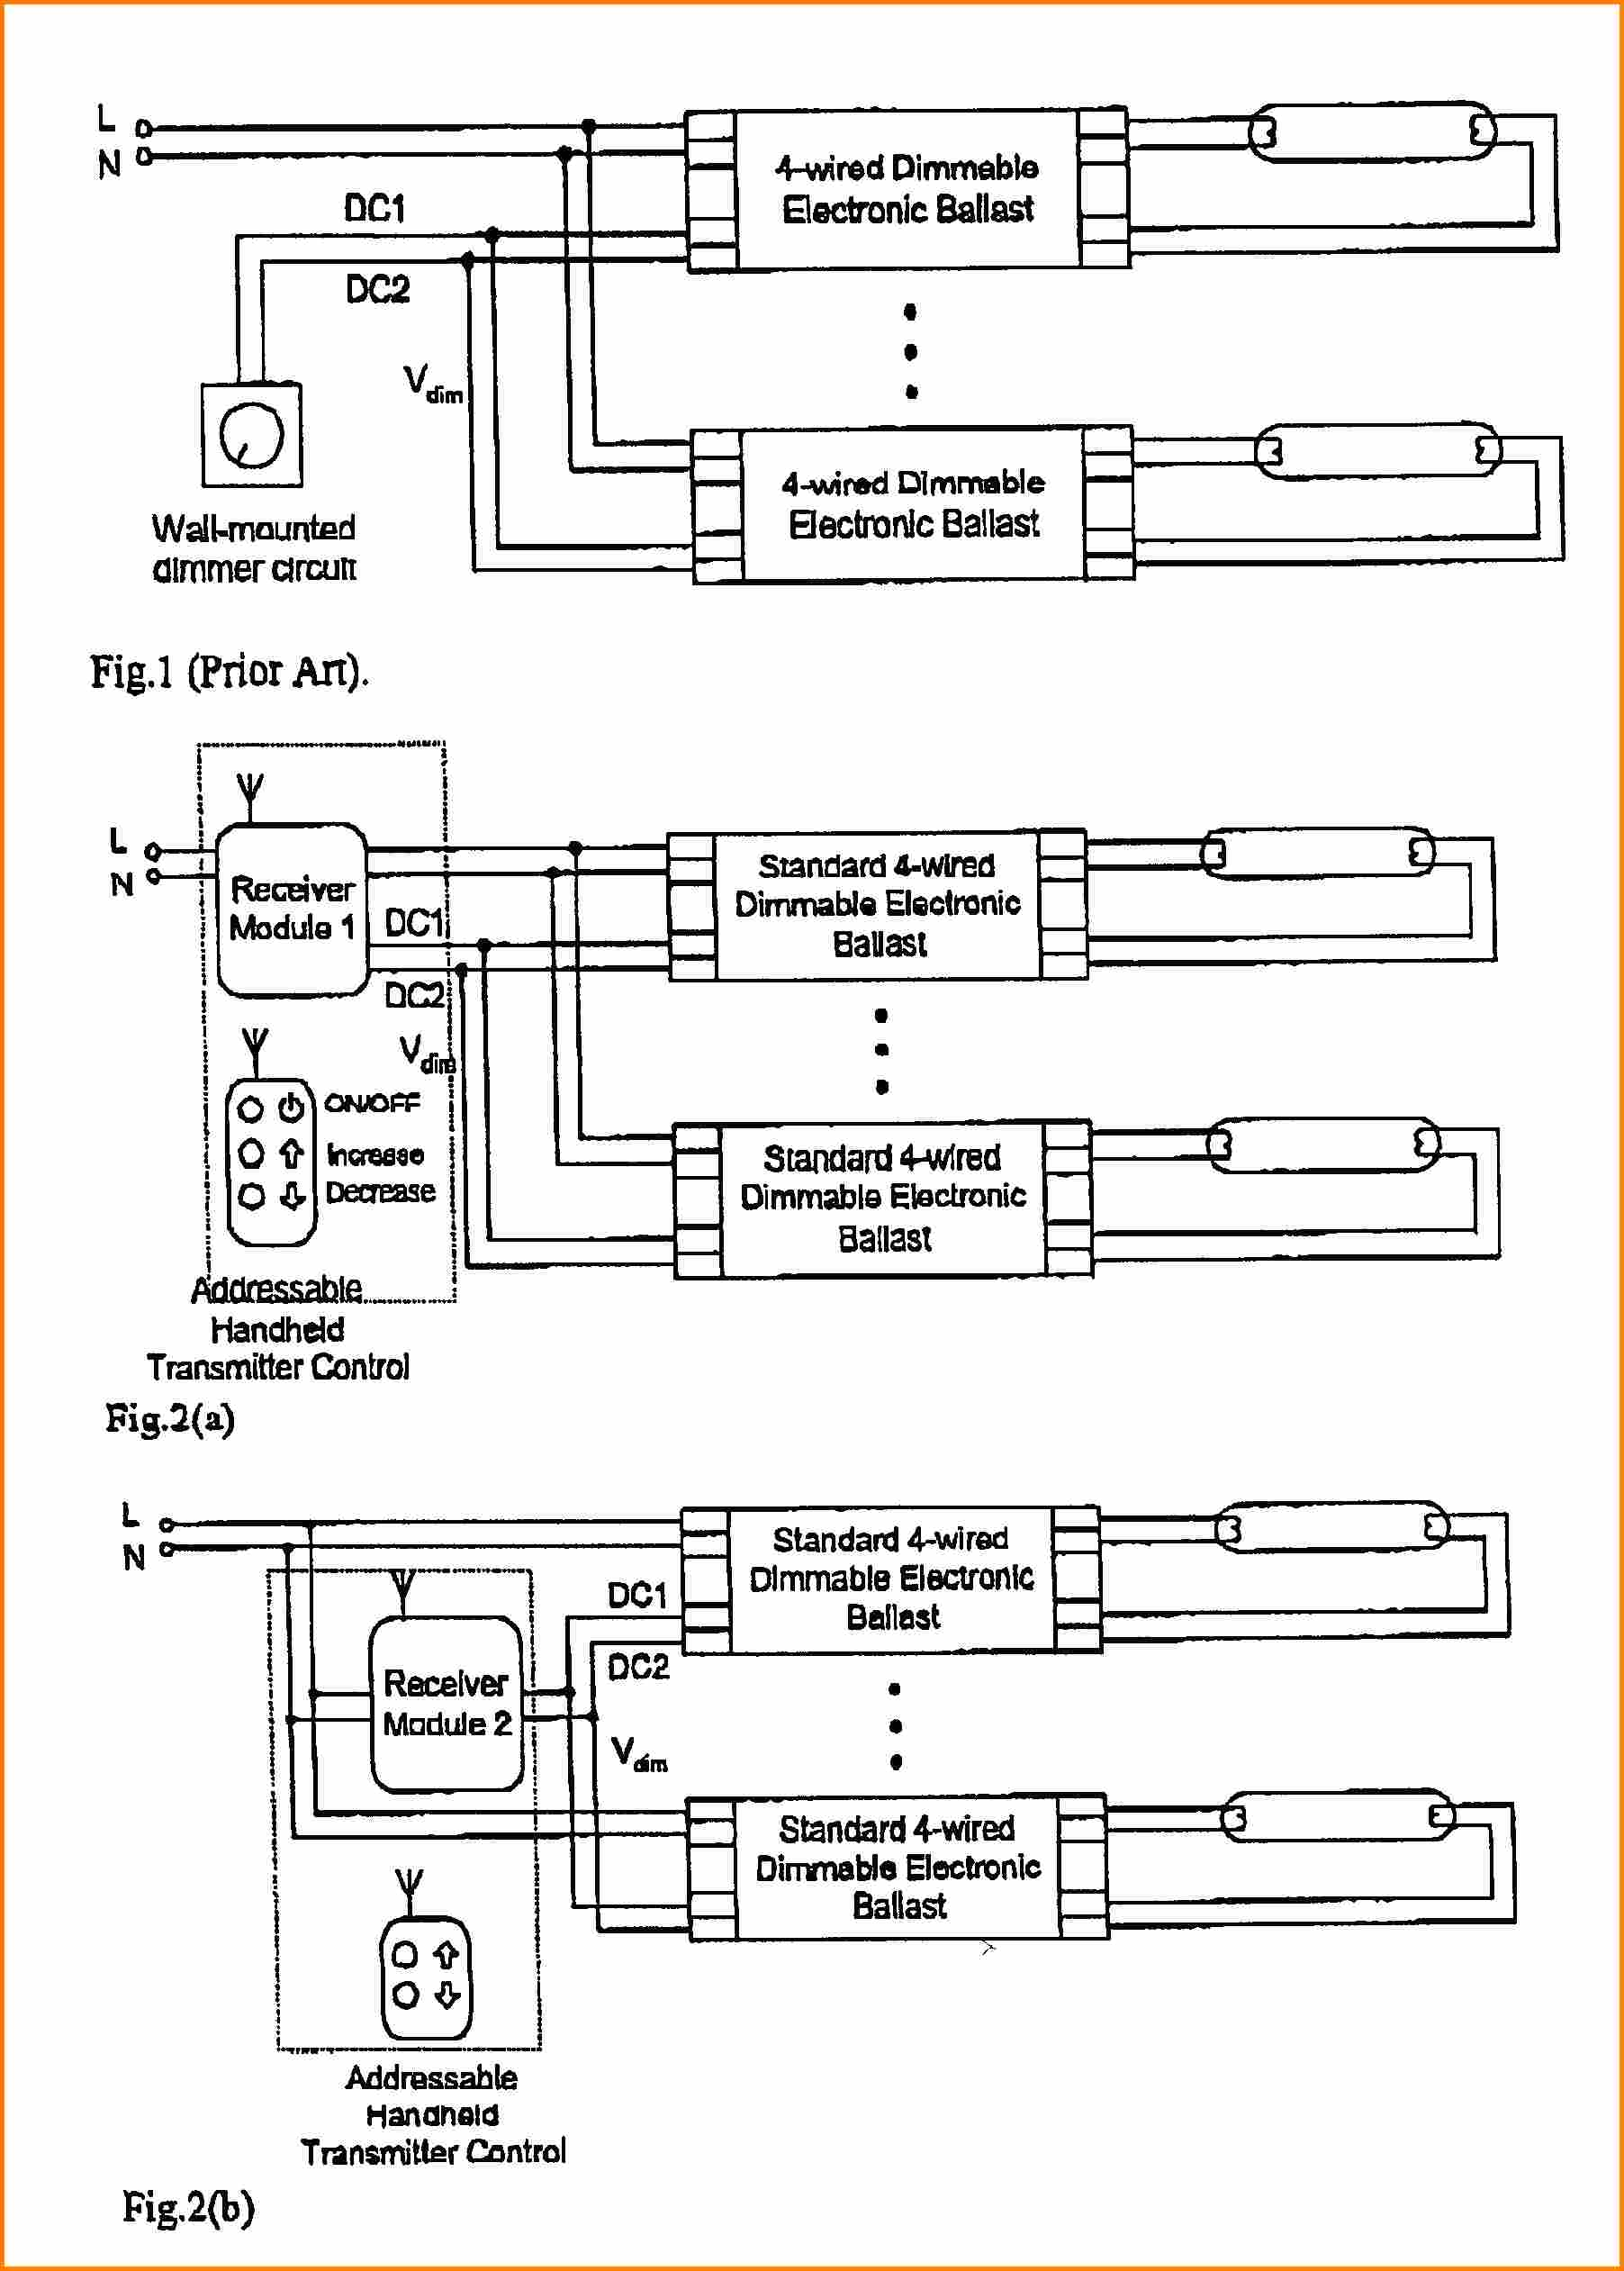 Gy 7922 Wire Pt100 Free Download Wiring Diagrams Pictures Wiring Download Diagram